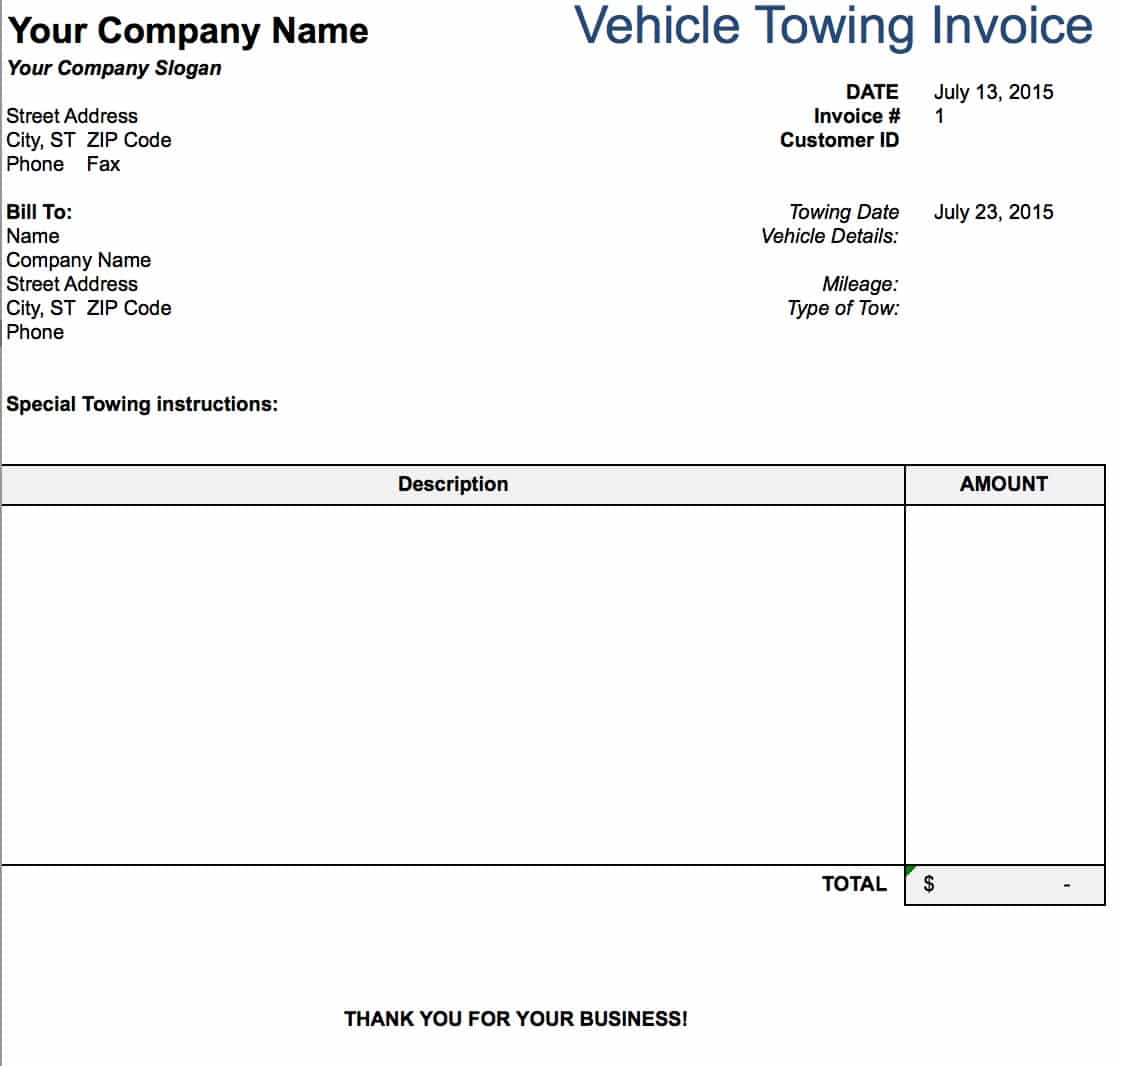 Free Tow Service Invoice Template Excel PDF Word Doc - Invoices template free for service business